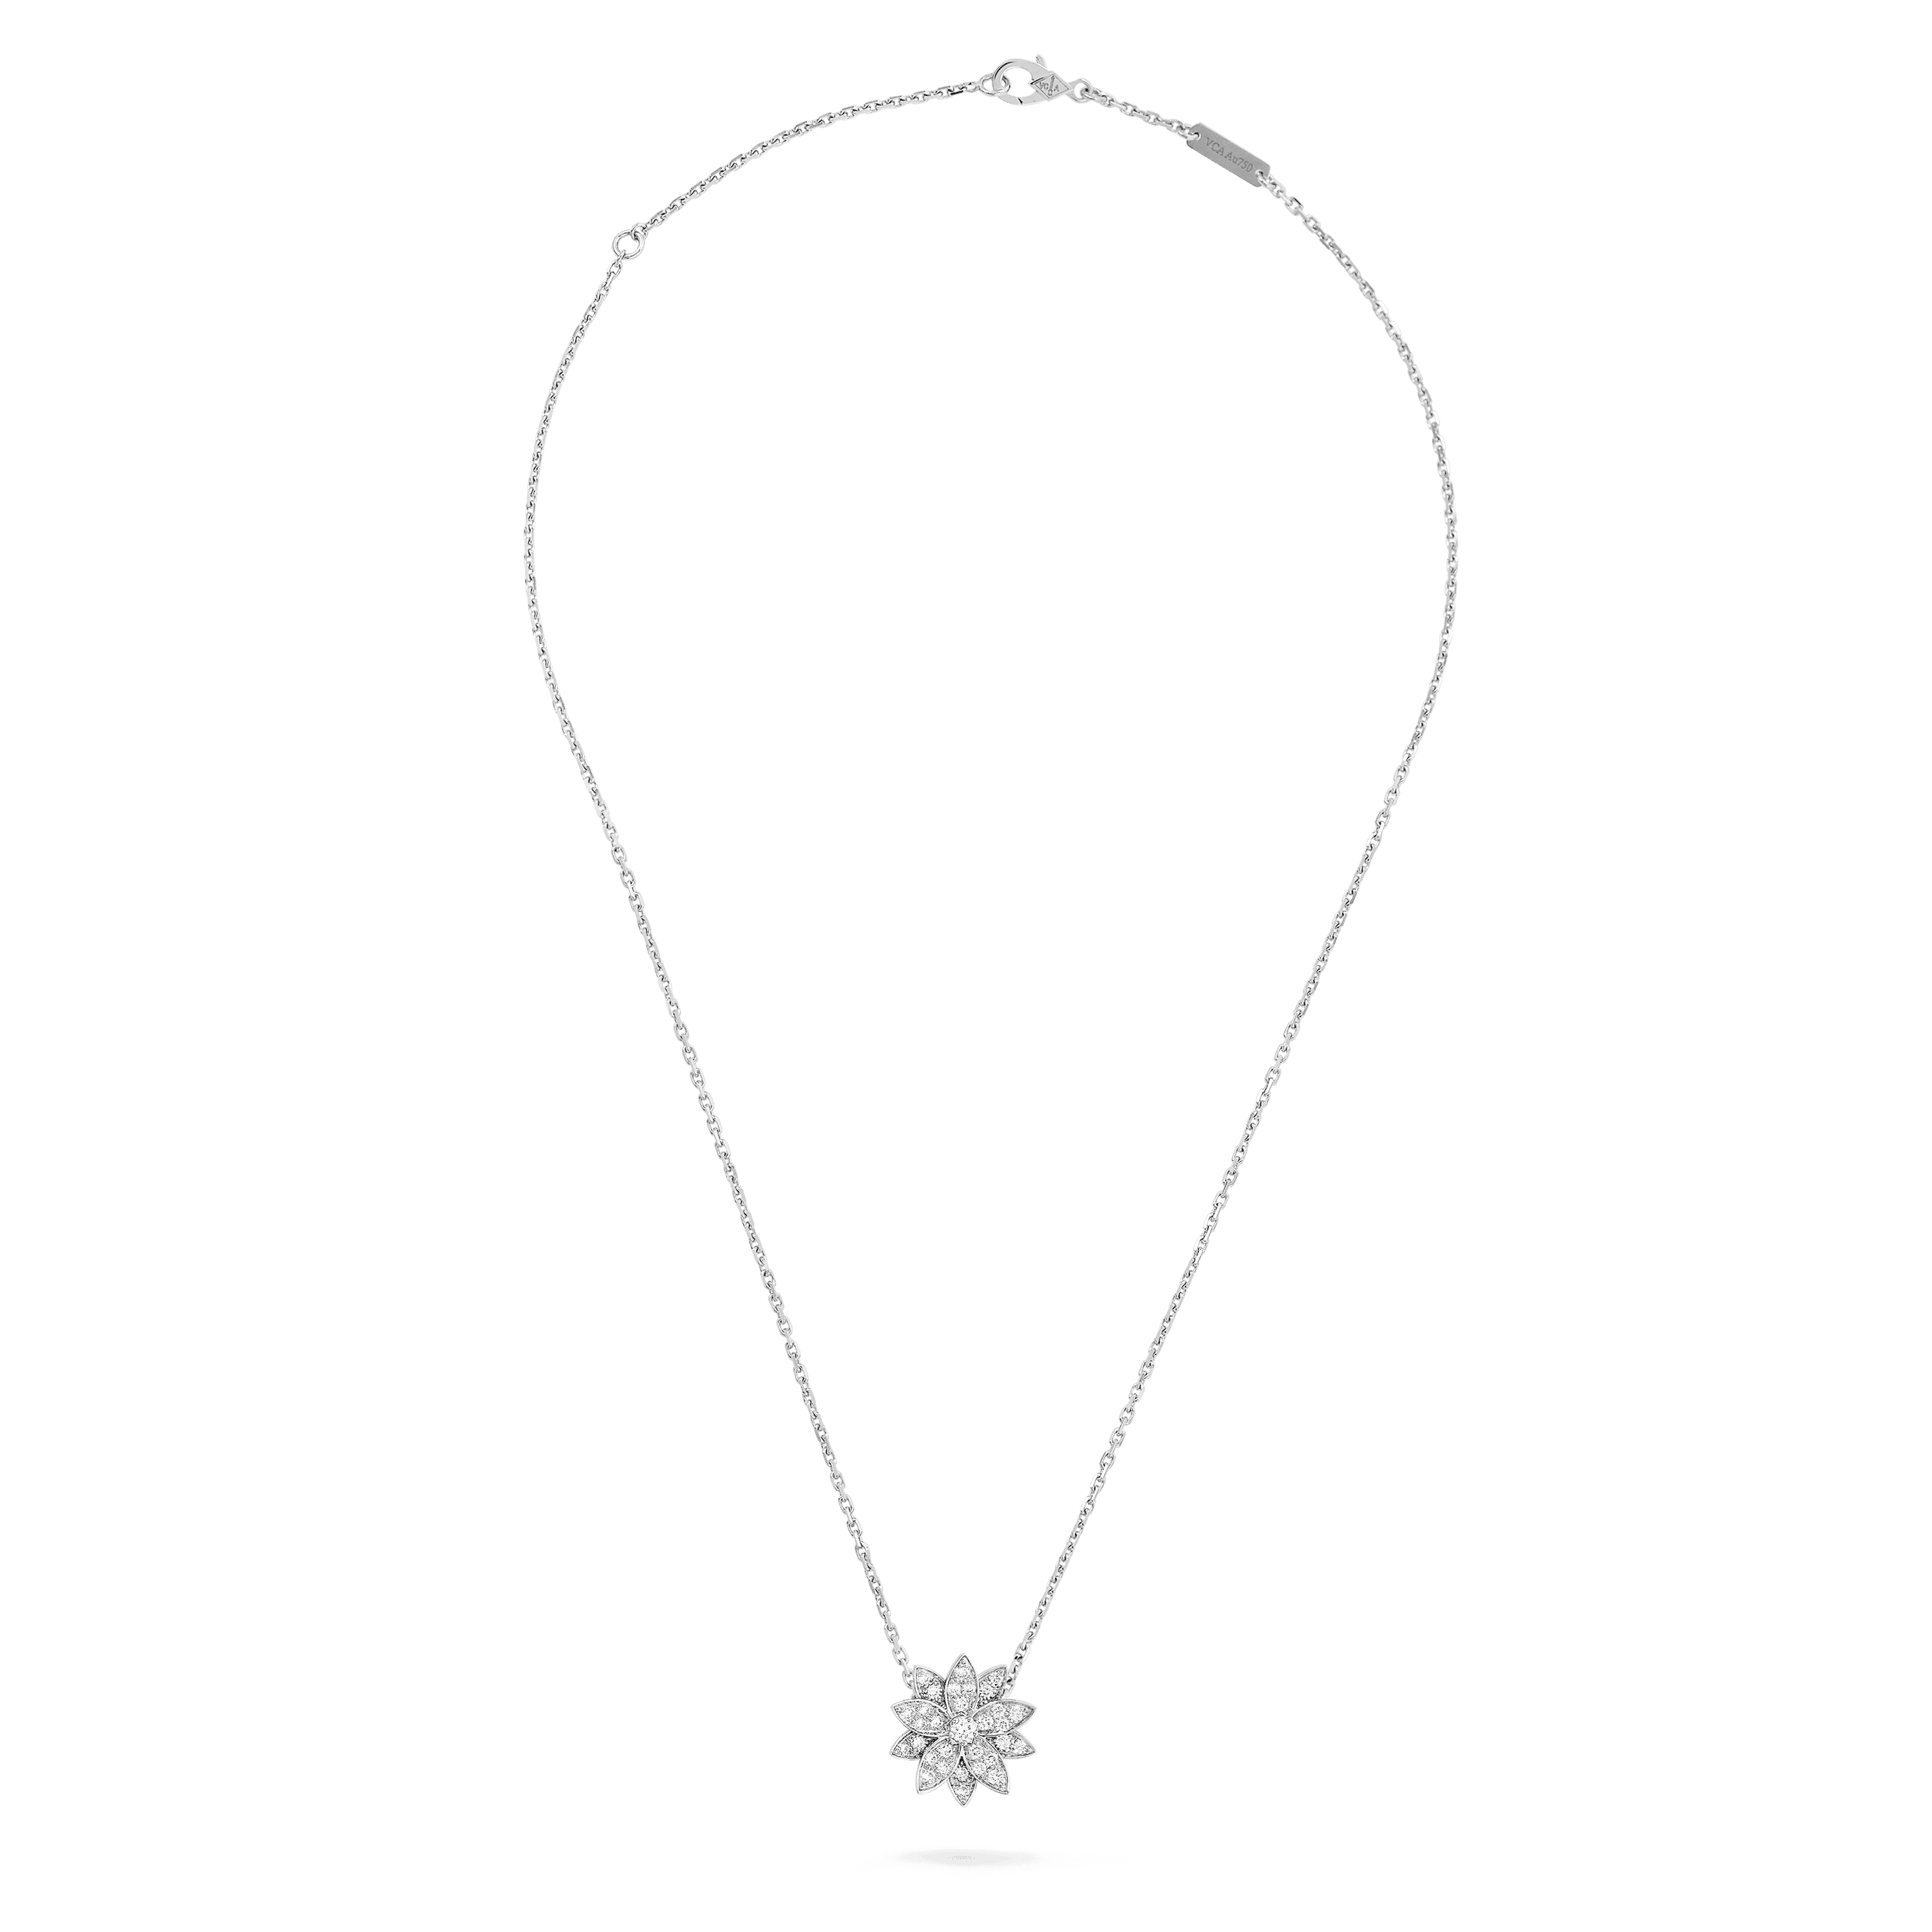 Lotus pendant, small model, - Front View - VCARO6P600 - Van Cleef & Arpels